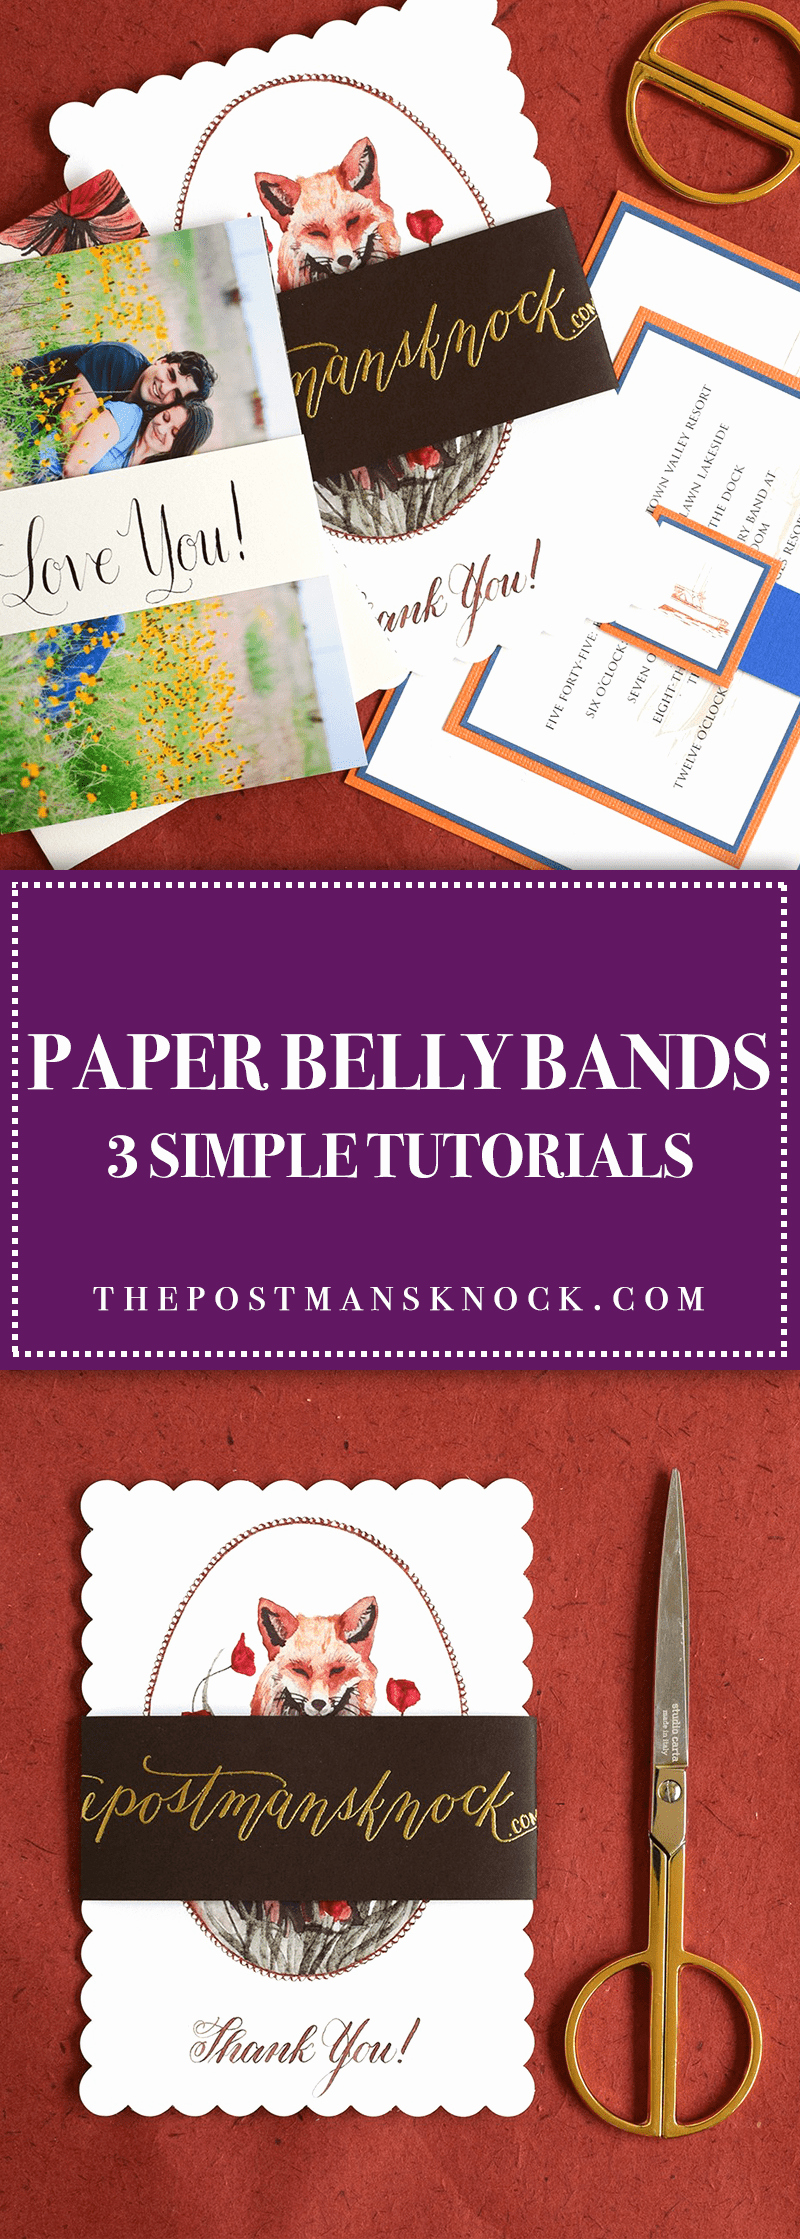 Invitation Belly Bands Diy Lovely Paper Belly Bands 3 Simple Tutorials